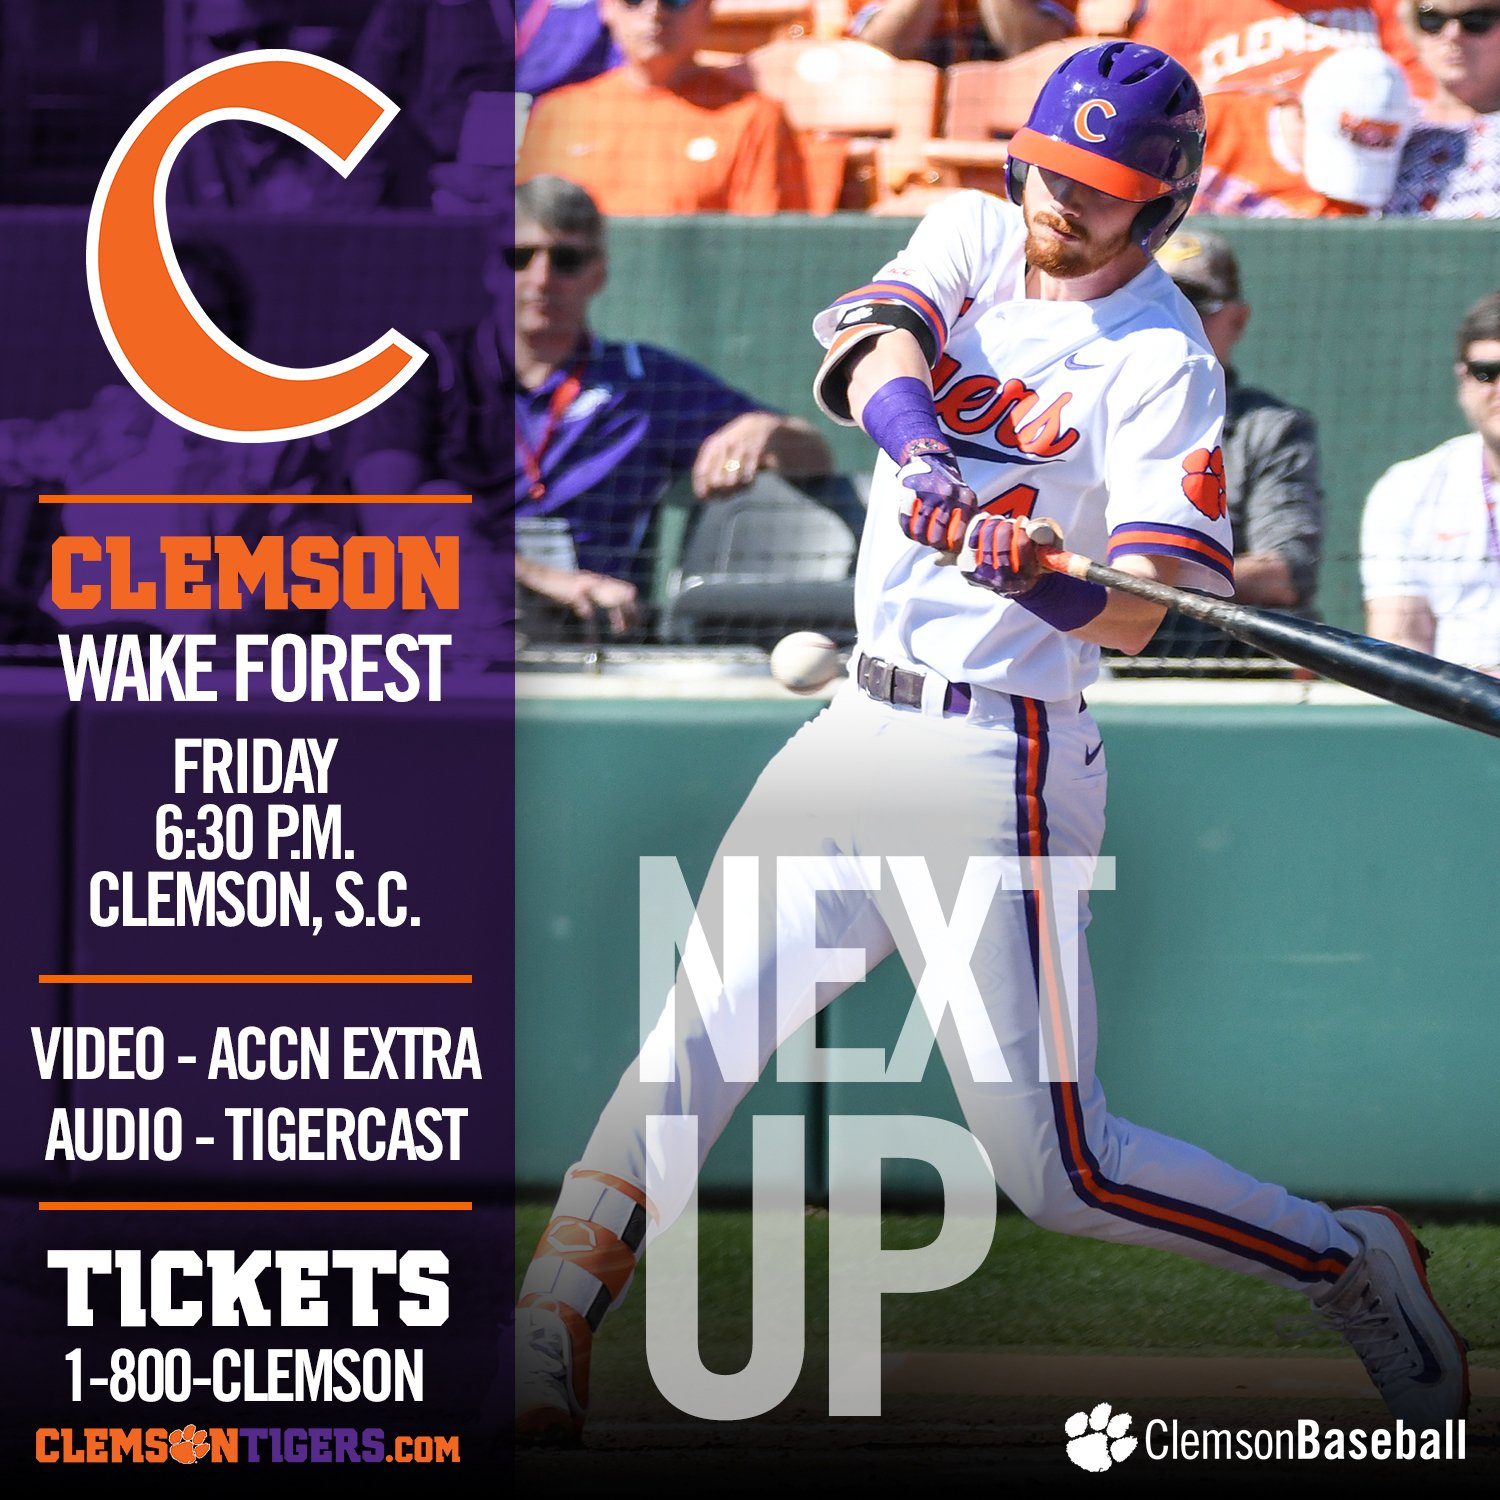 It's an @ACCBaseball gameday at #Clemson. The Tigers host WF at 6:30 p.m.!  GAMEDAY - https://t.co/9Ju858VN2E https://t.co/9RFXlsML1t